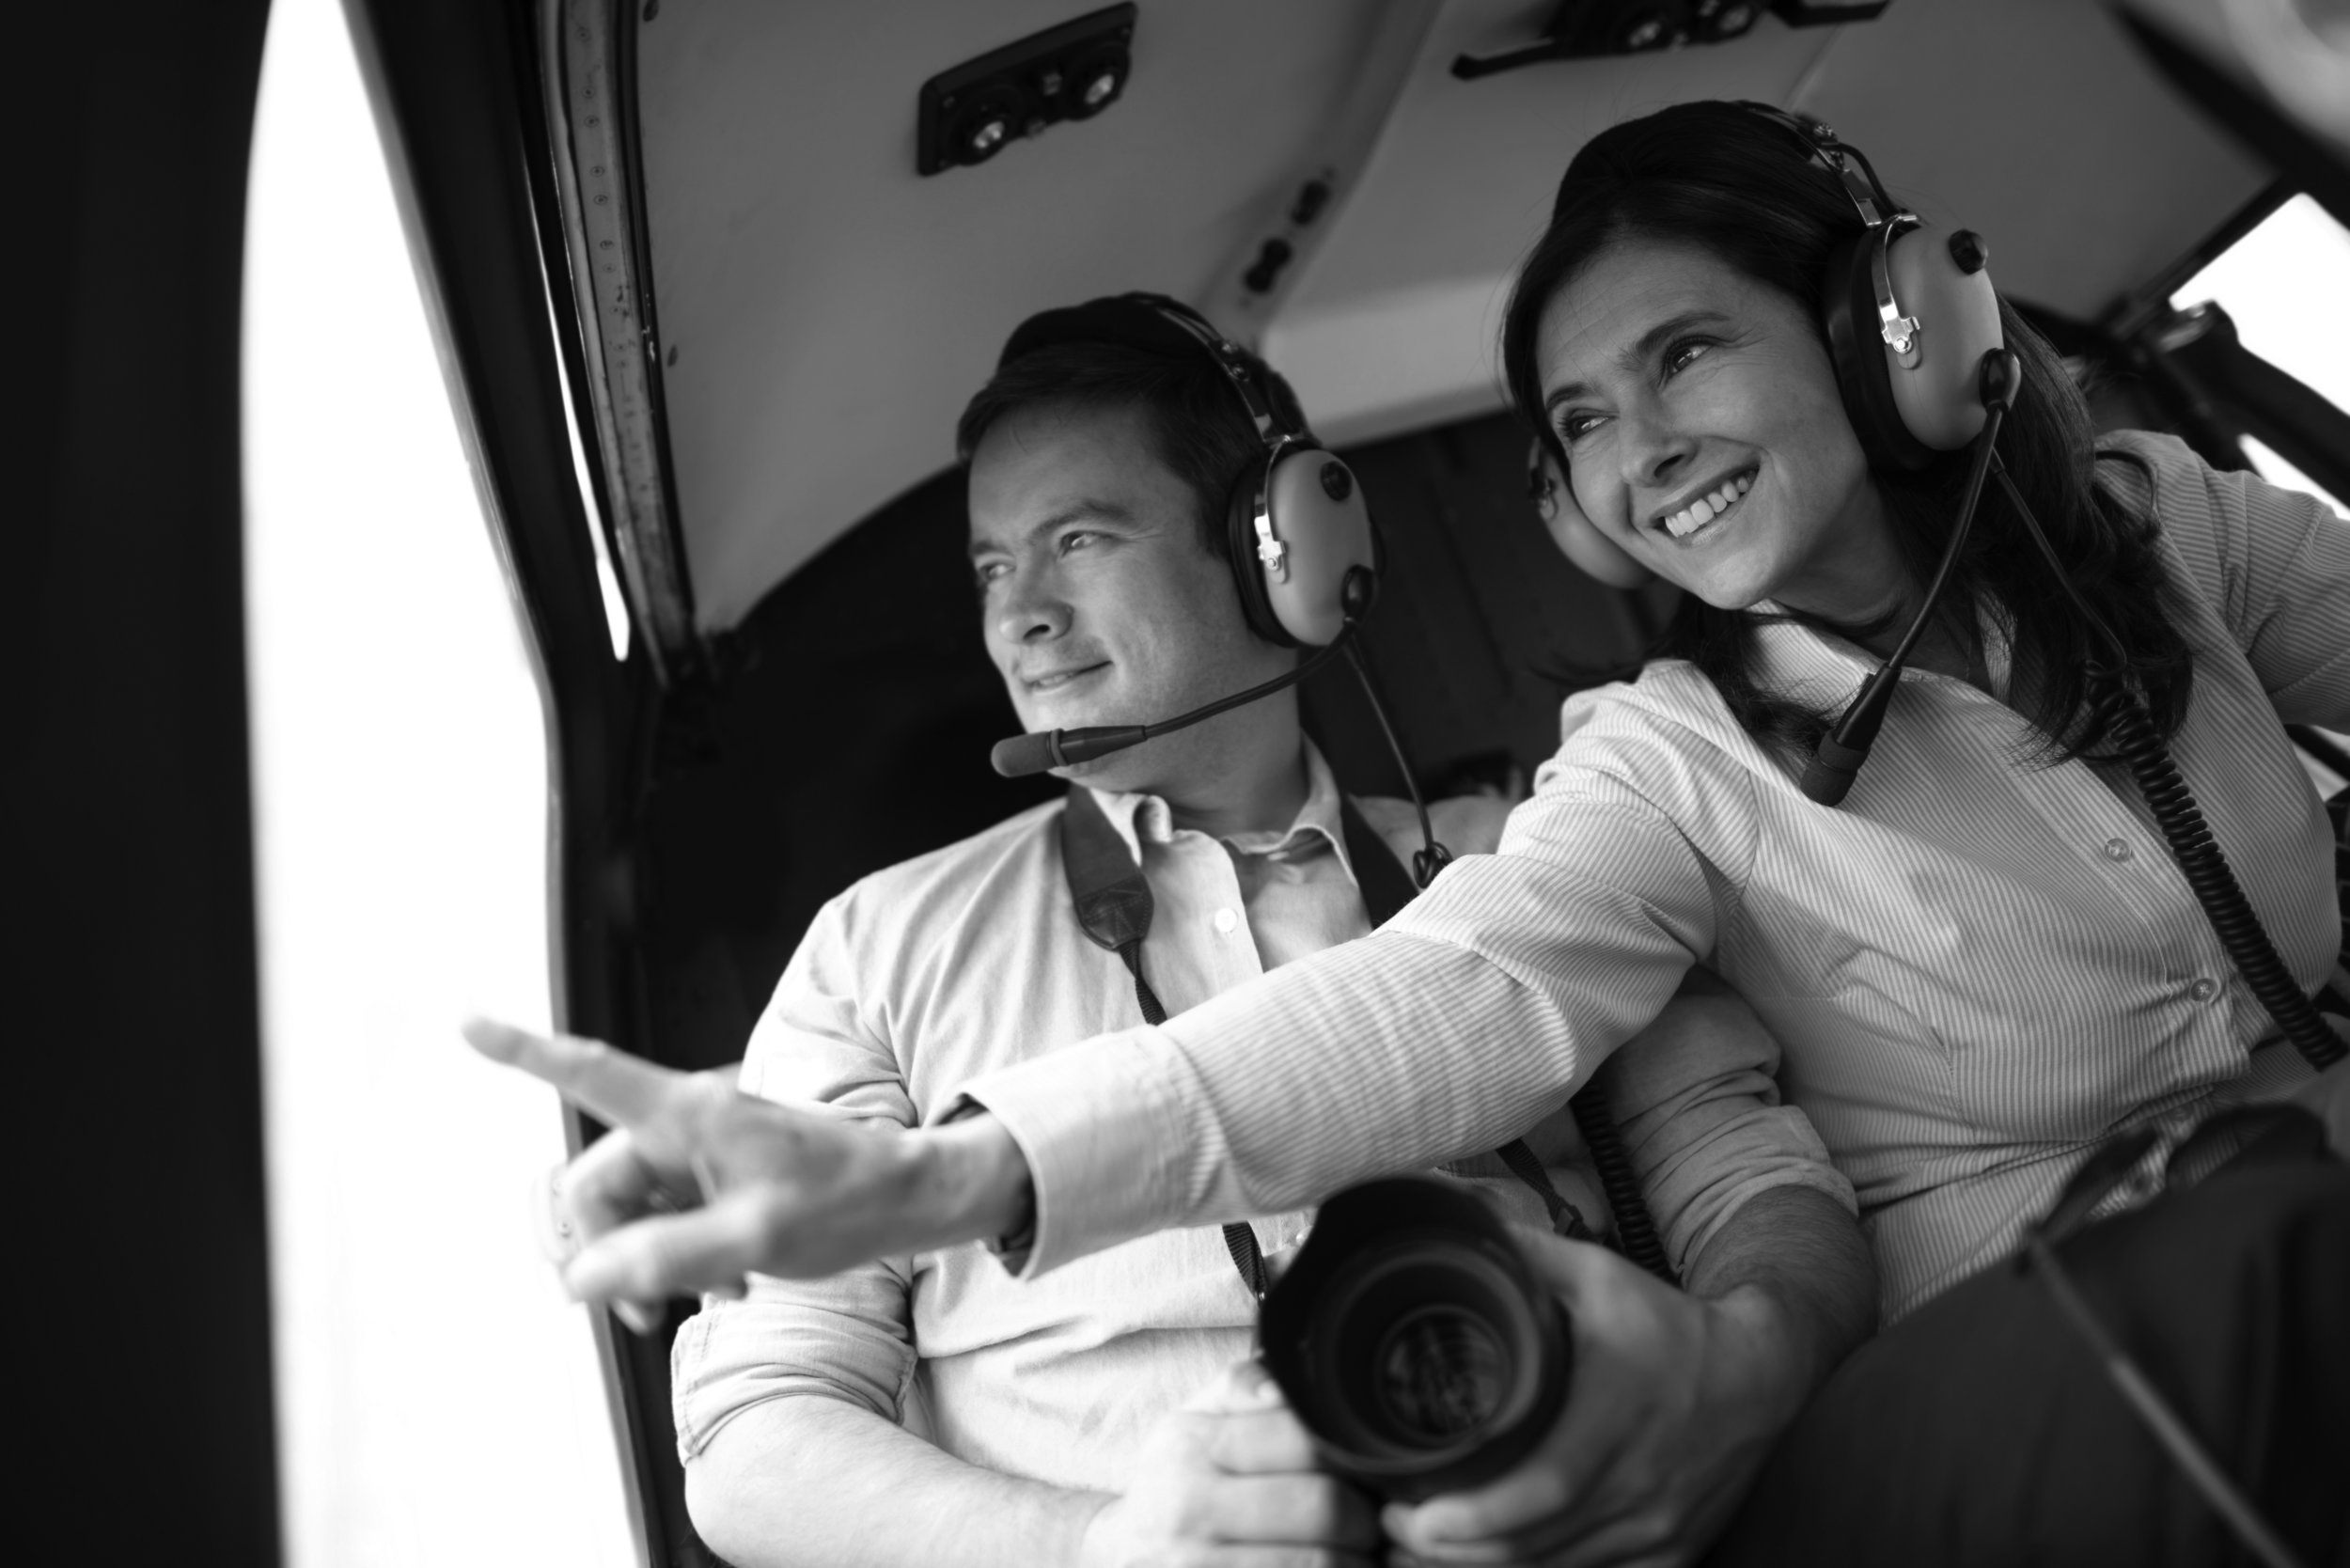 A birthday helicopter flight - What better way to celebrate your birthday than a helicopter charter flight over your local area or take the controls as part of a trial lesson.